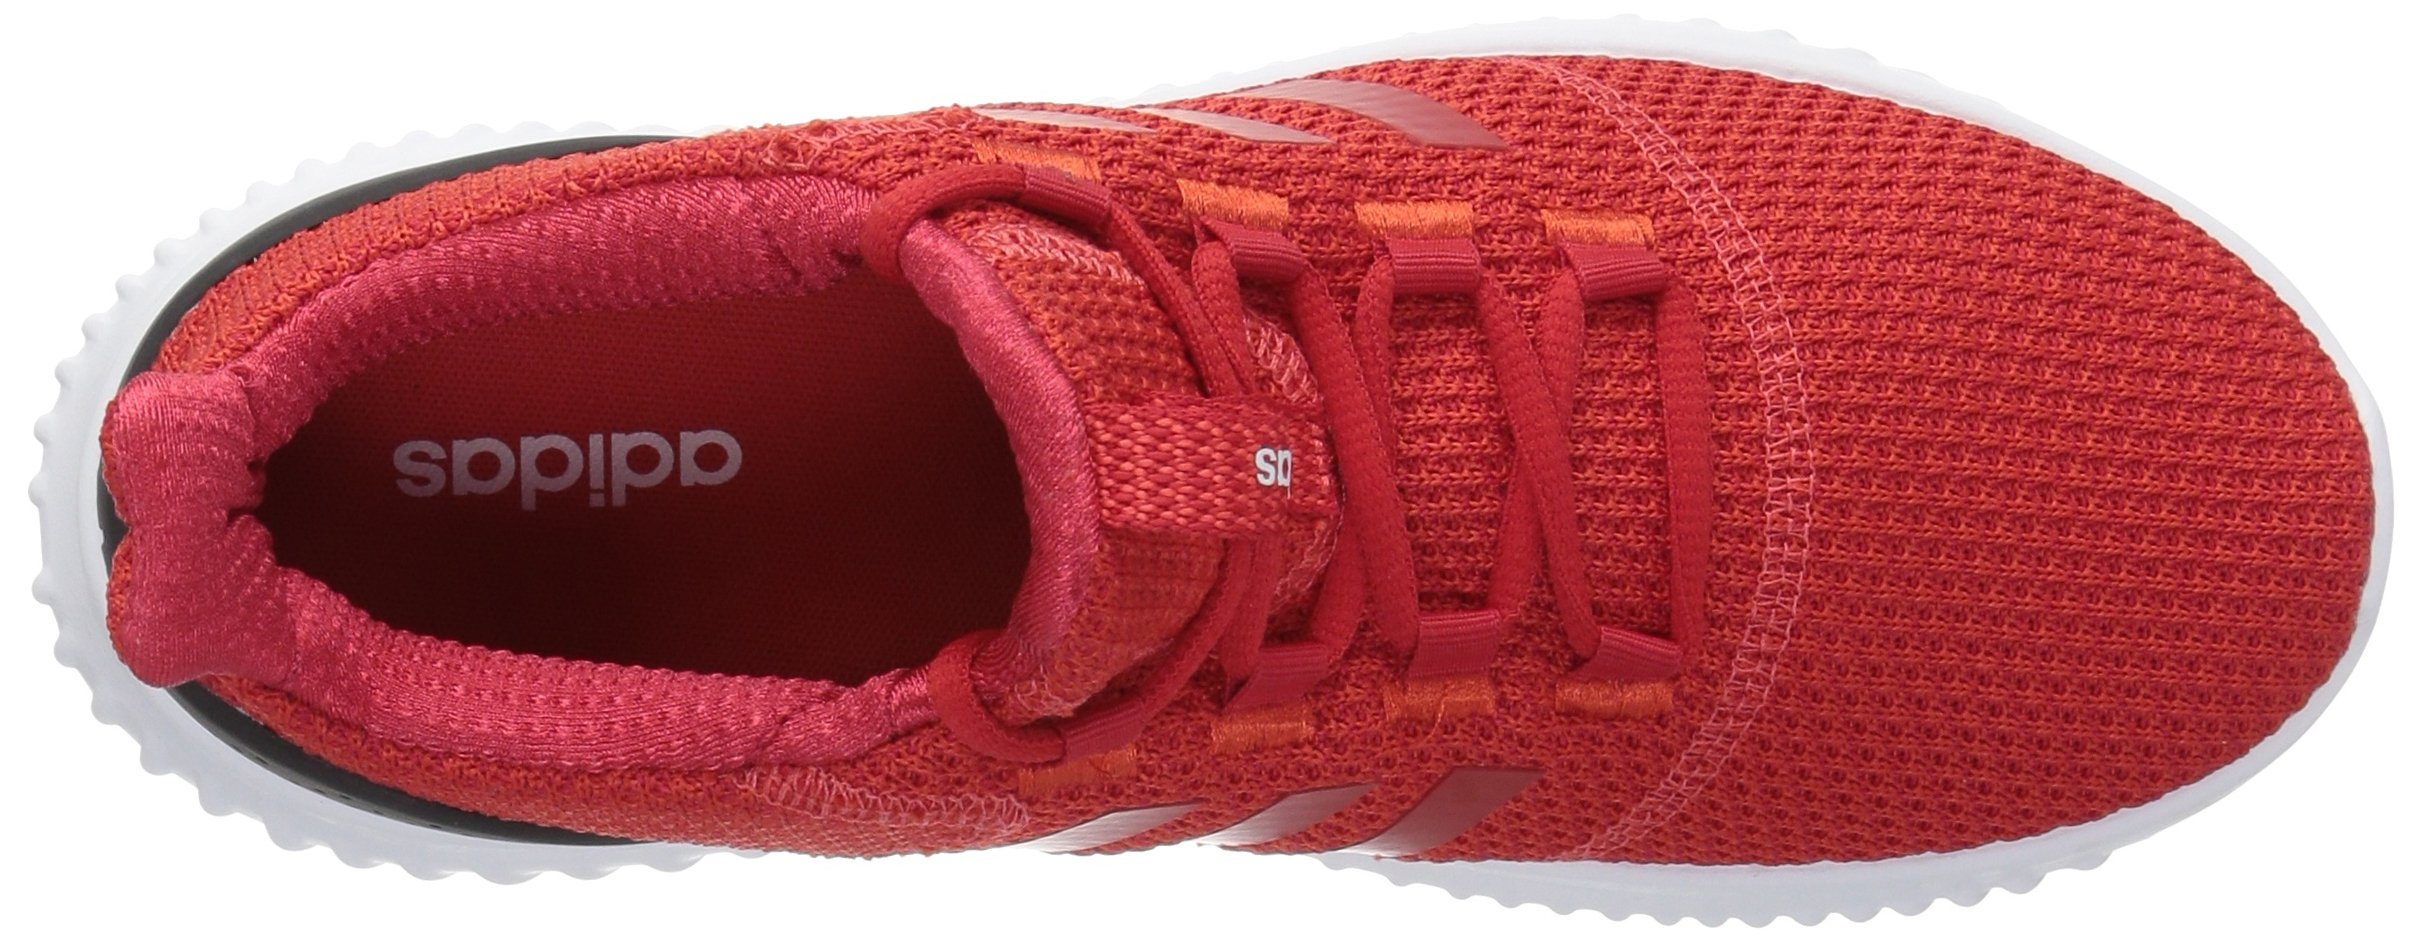 adidas Kids' Cloudfoam Ultimate Running Shoe, Red/Scarlet/Black, 1 M US Little Kid by adidas (Image #7)